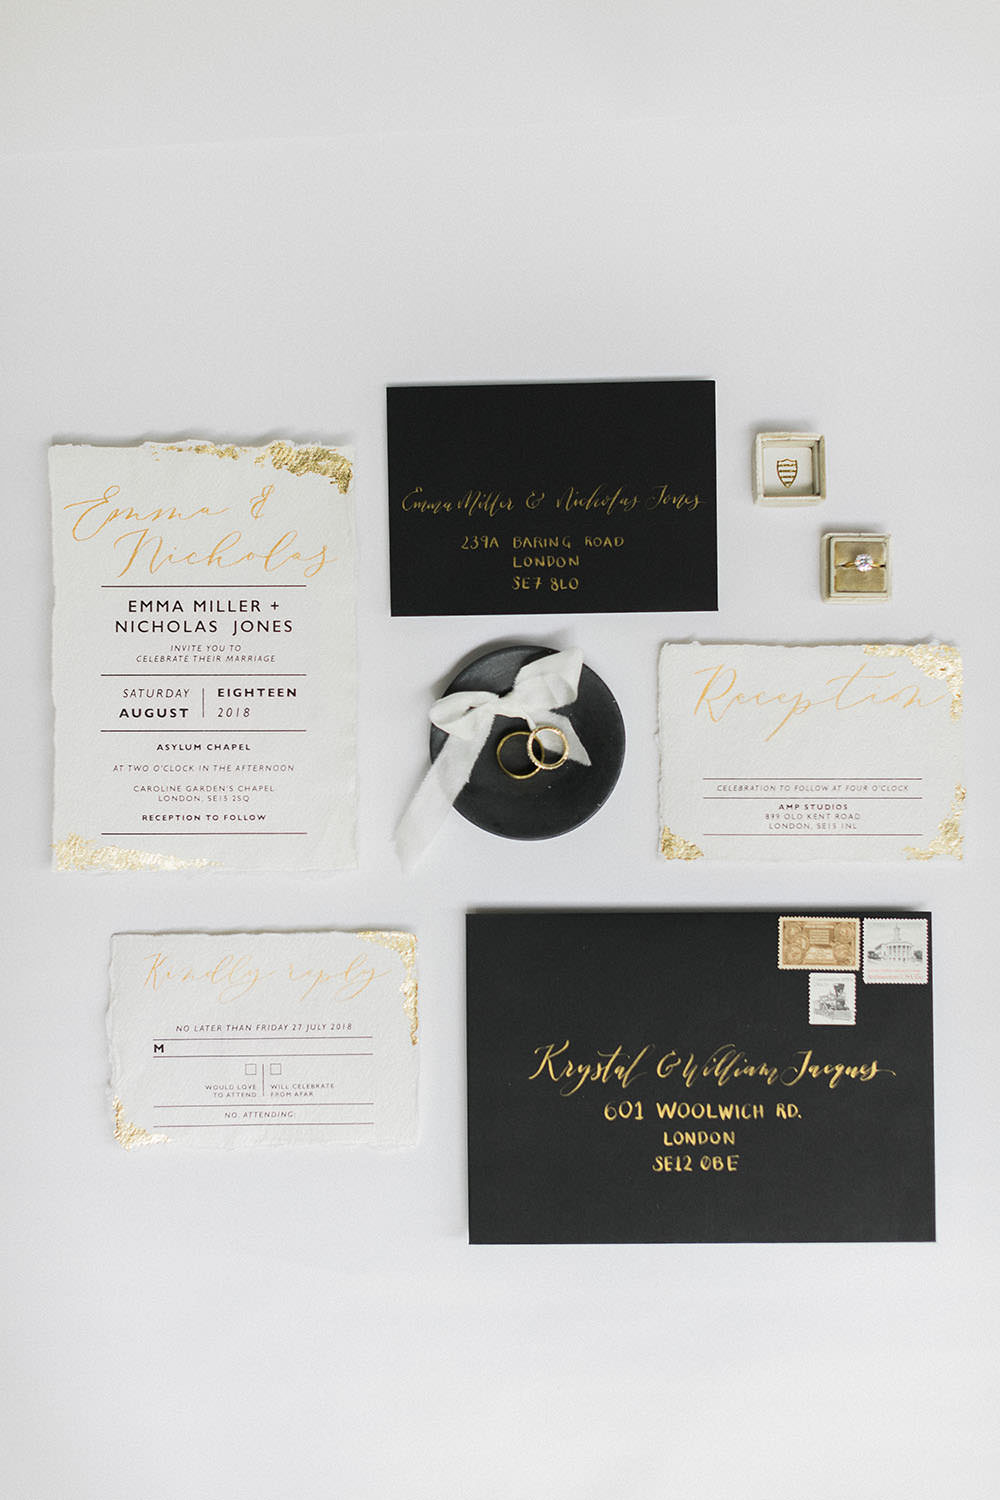 Black Stationery Suite Invitations Flay Lay Stationery Metallic Calligraphy Velvet Ring Box Burgundy Gold Wedding Ideas Sarah Porter Photography